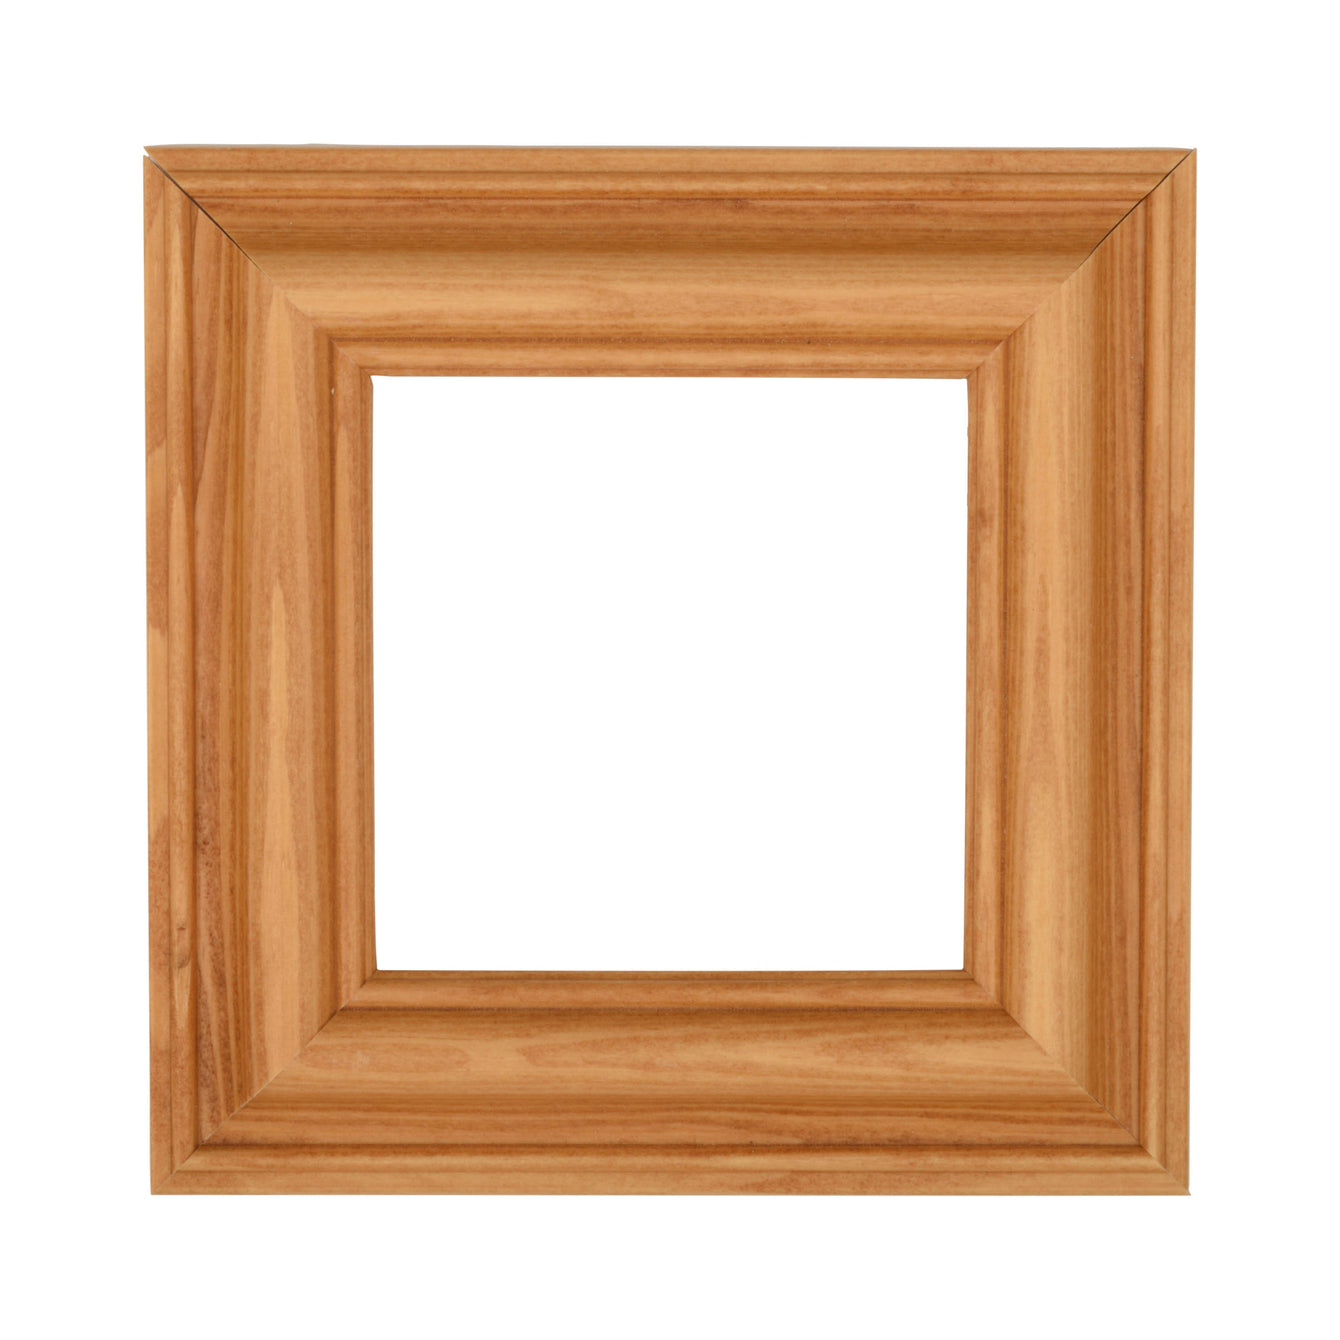 ElekTek Switch Surround Ovolo Frame Cover Finger Plate Pine Shades - Buy It Better Limed Pine